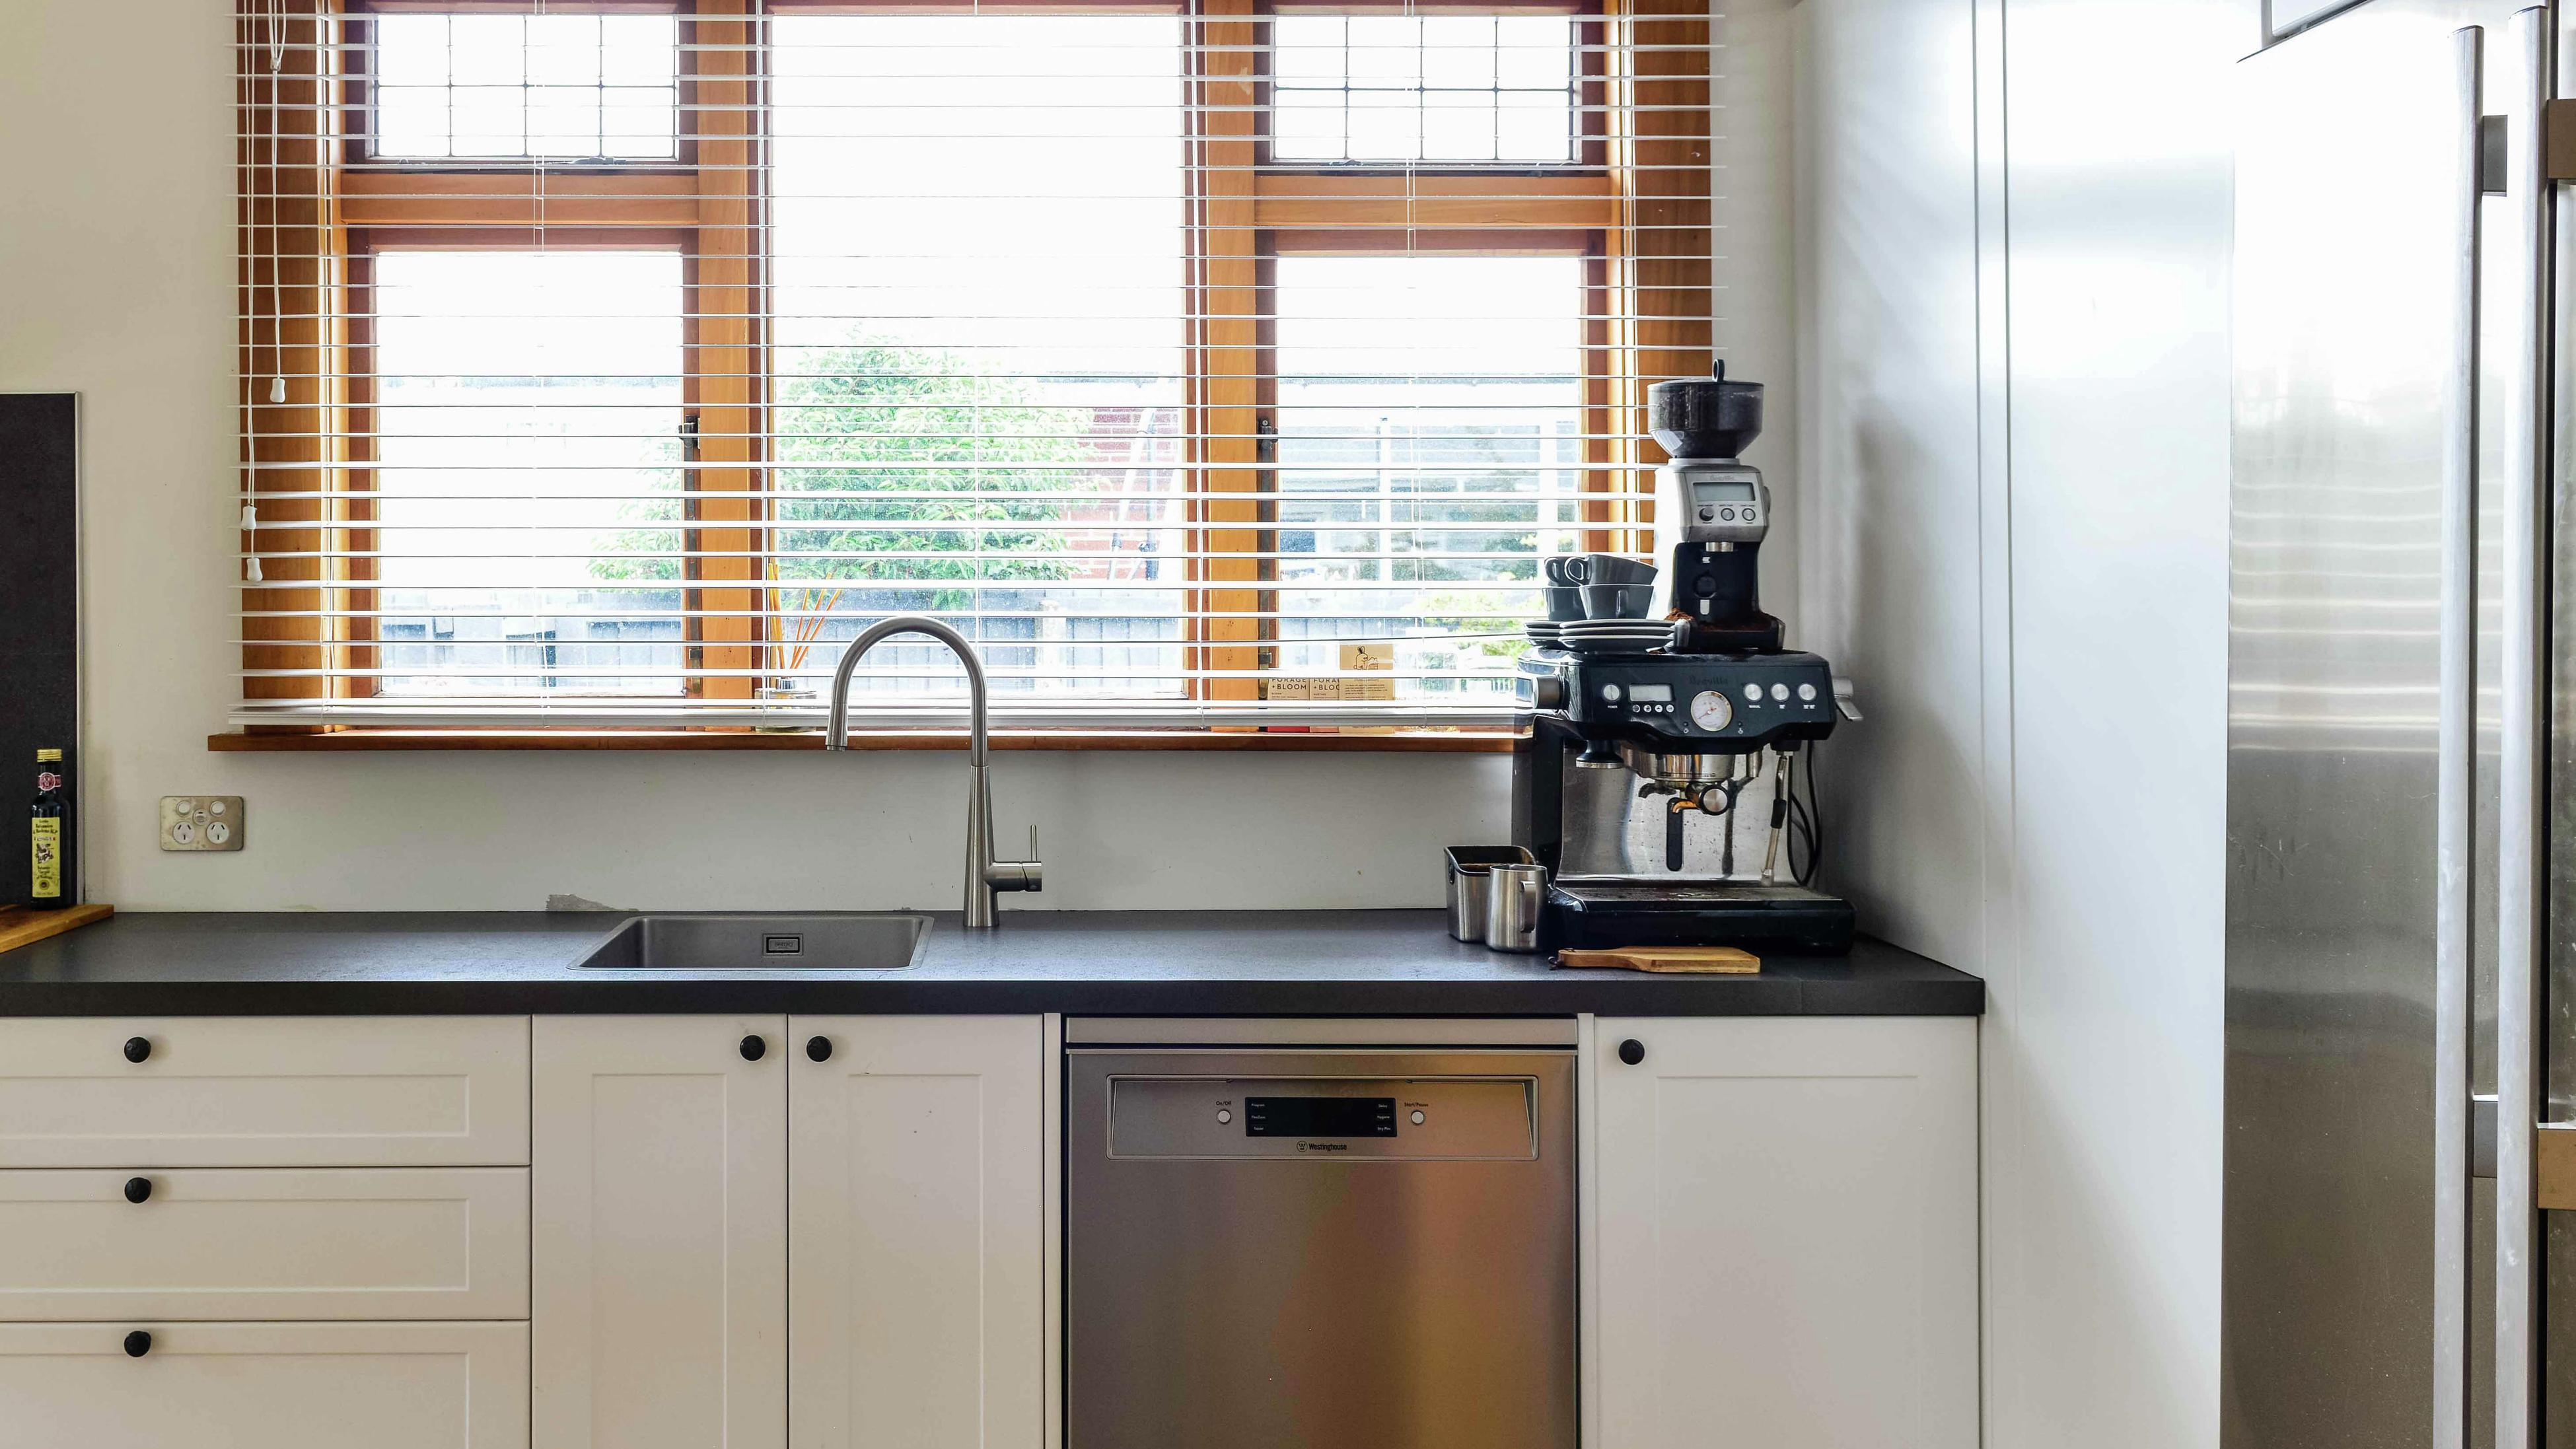 Modern kitchen bench-top and cabinets